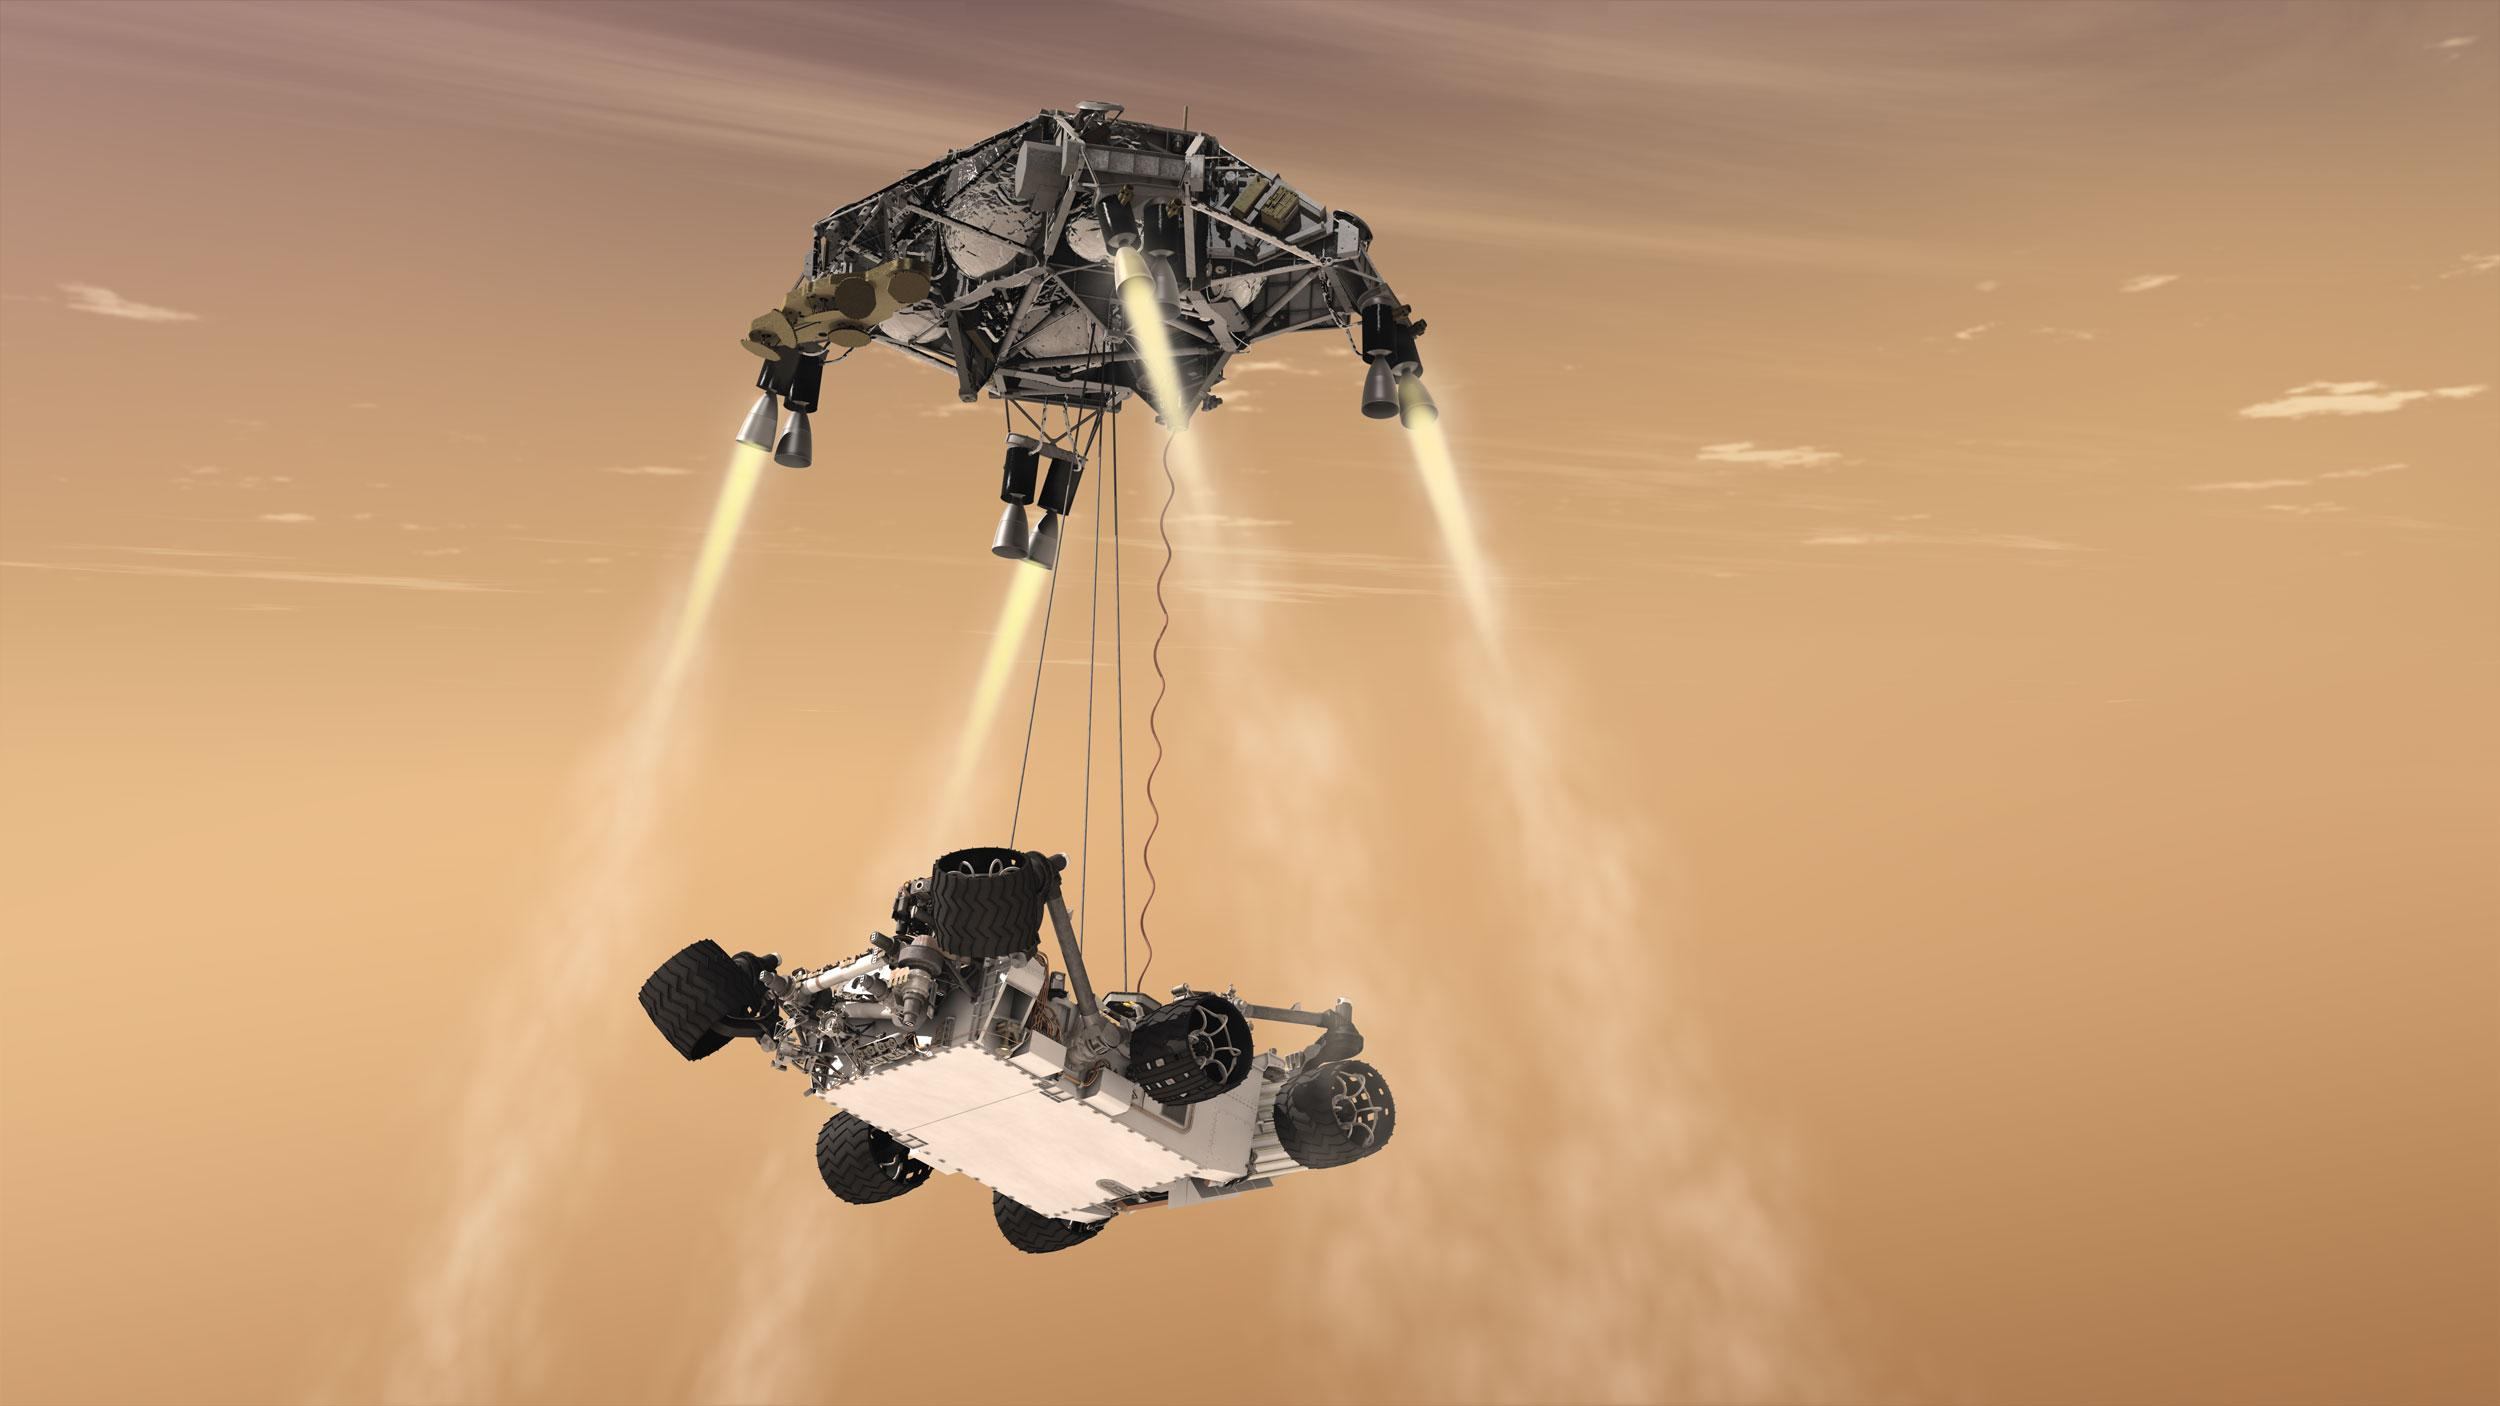 Despite Risk, Experts Bet on New Mars Rover's Audacious Landing Plan